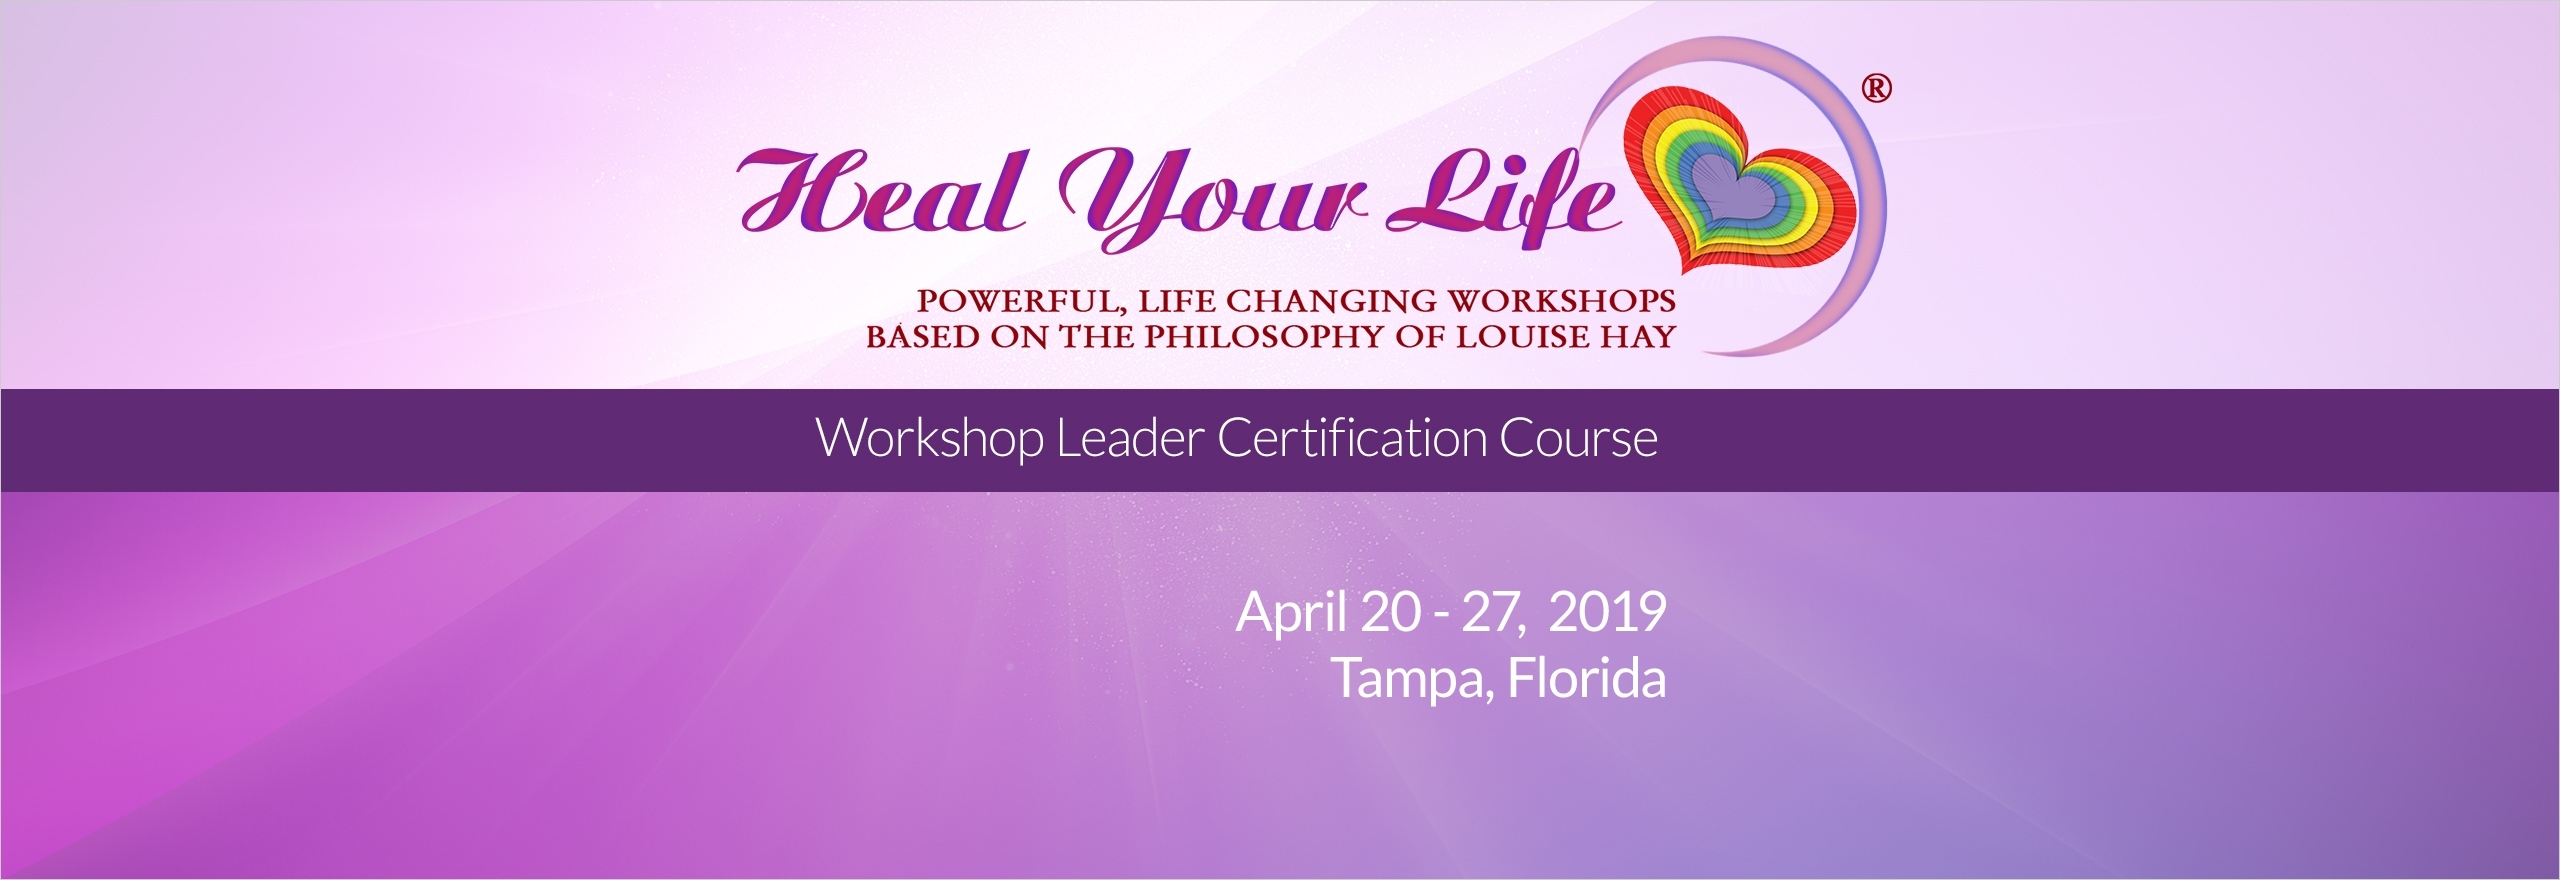 Heal Your Life Workshop Leader Training - Tampa